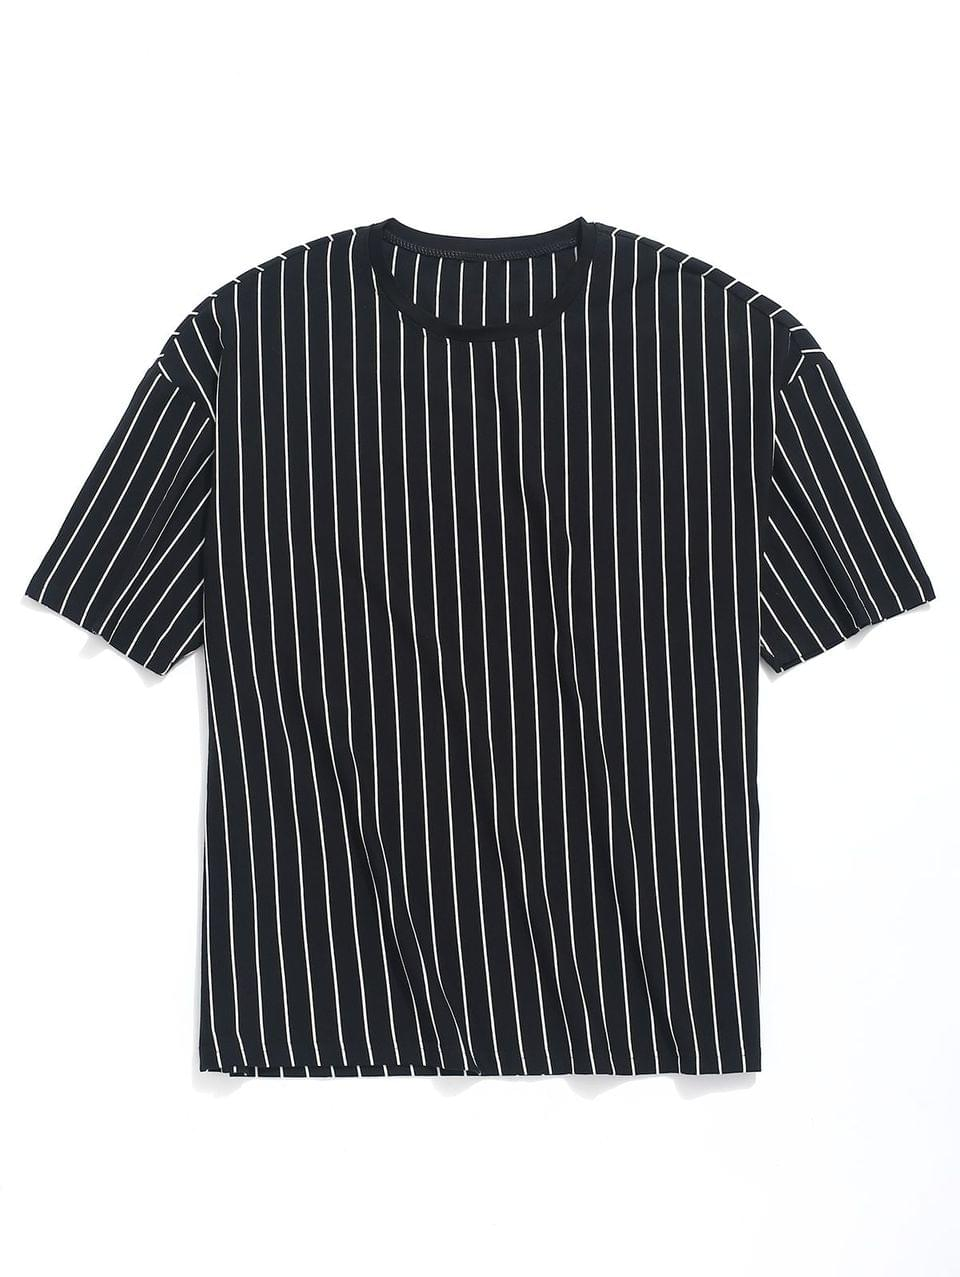 Men's Striped Print Drop Shoulder T-shirt - Black Xl